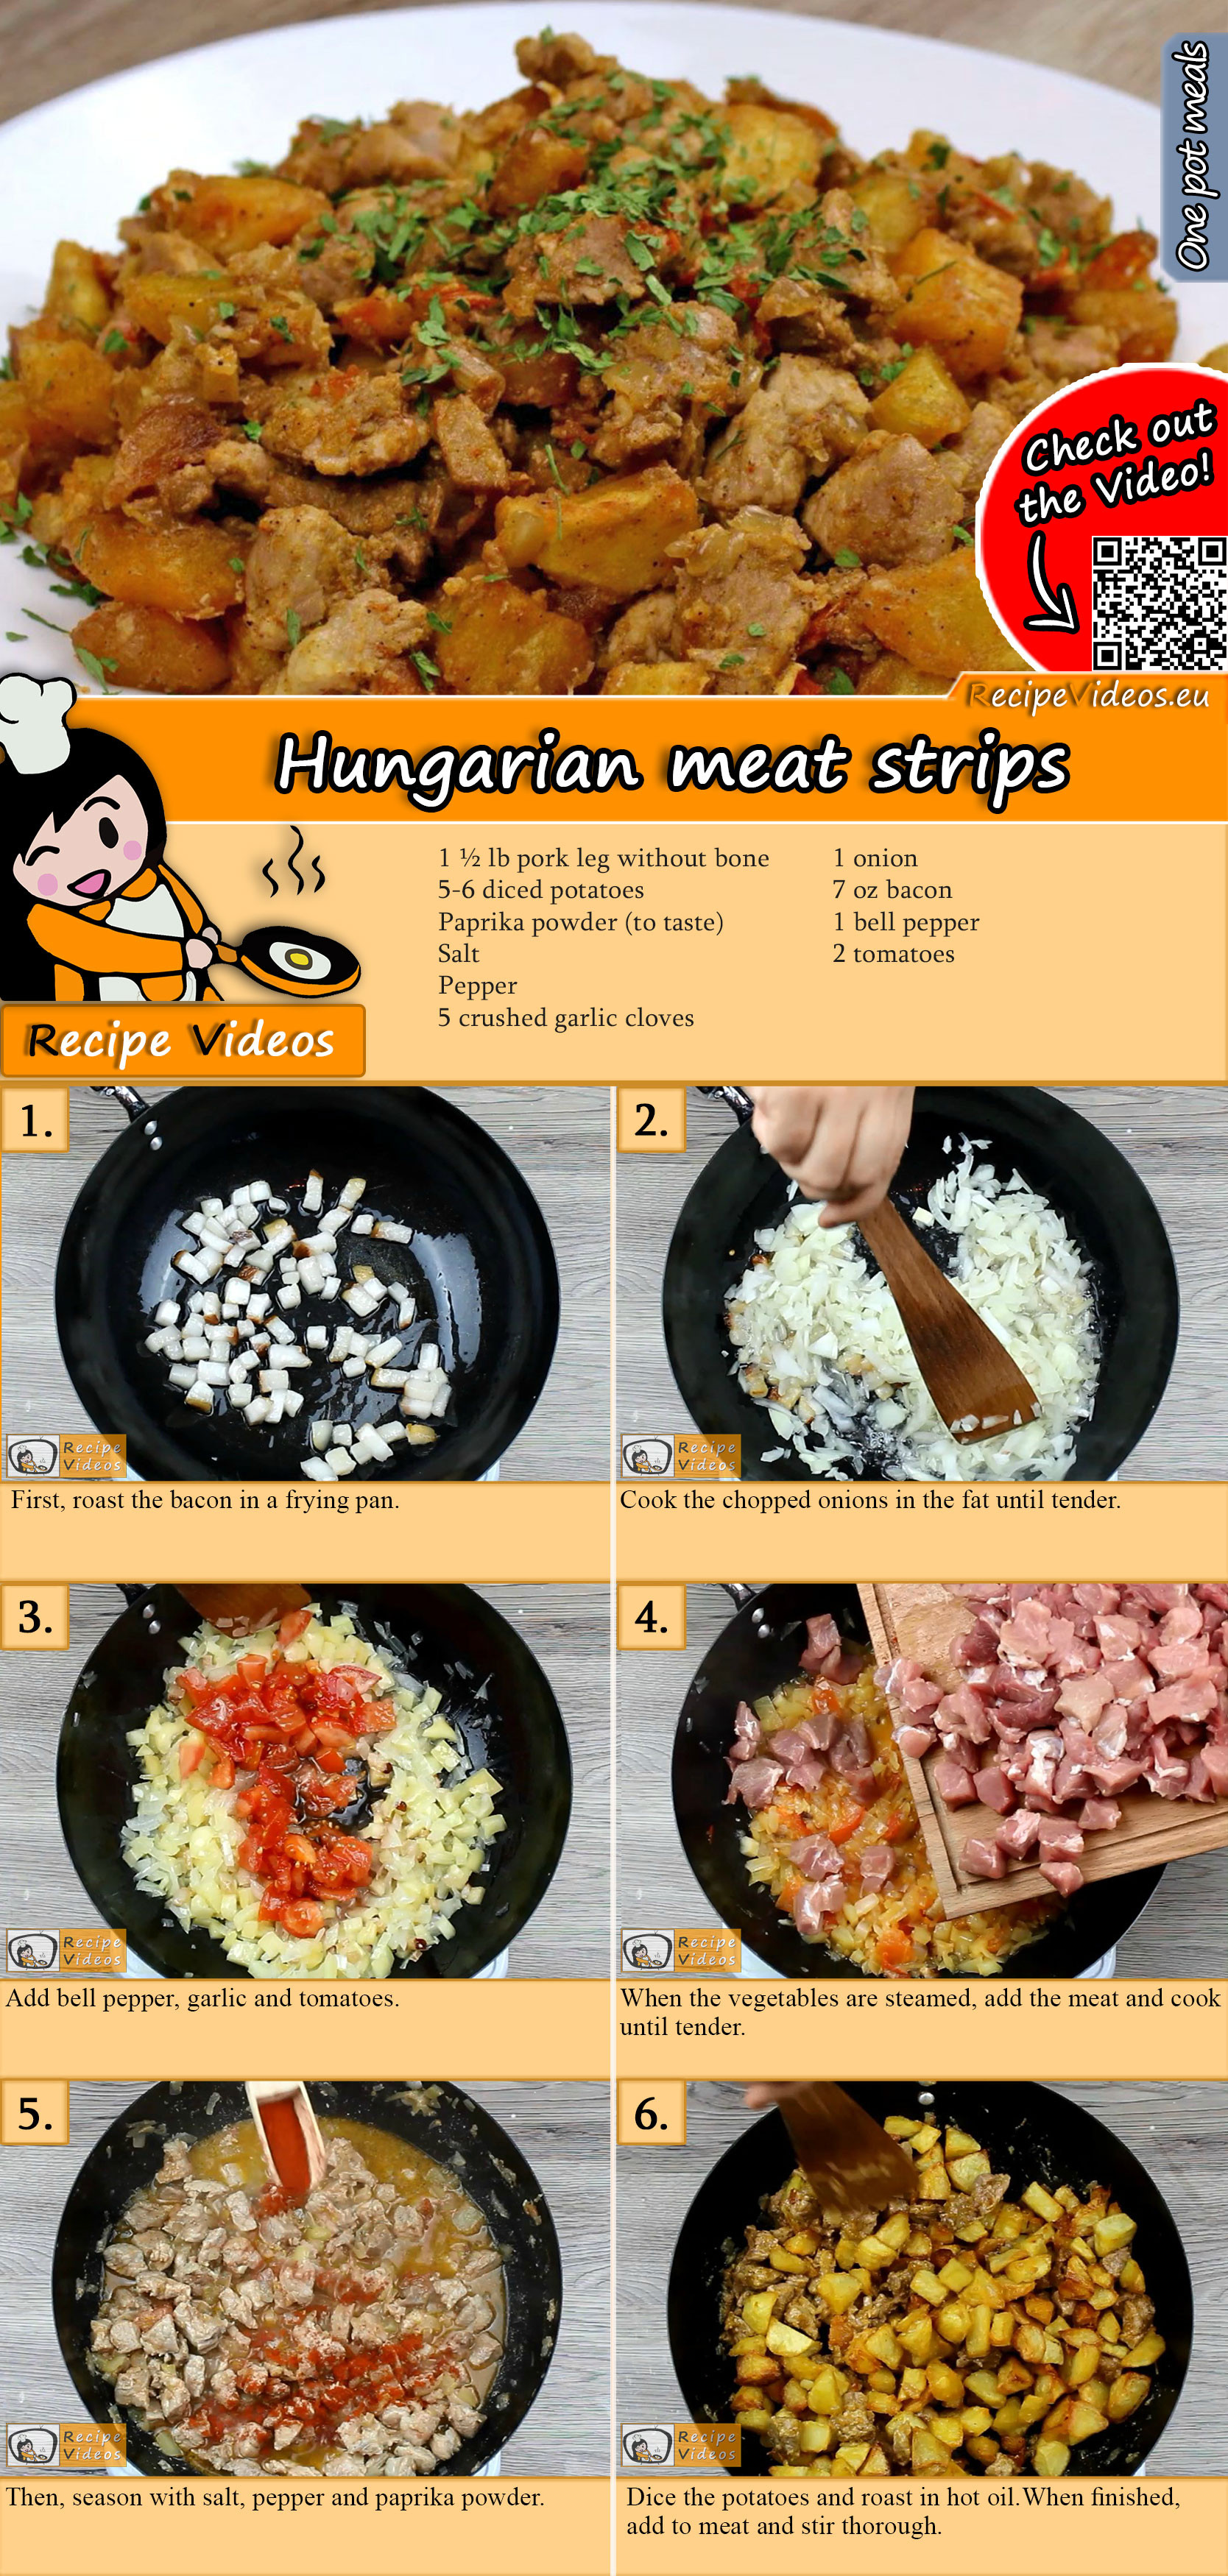 Hungarian meat strips recipe with video